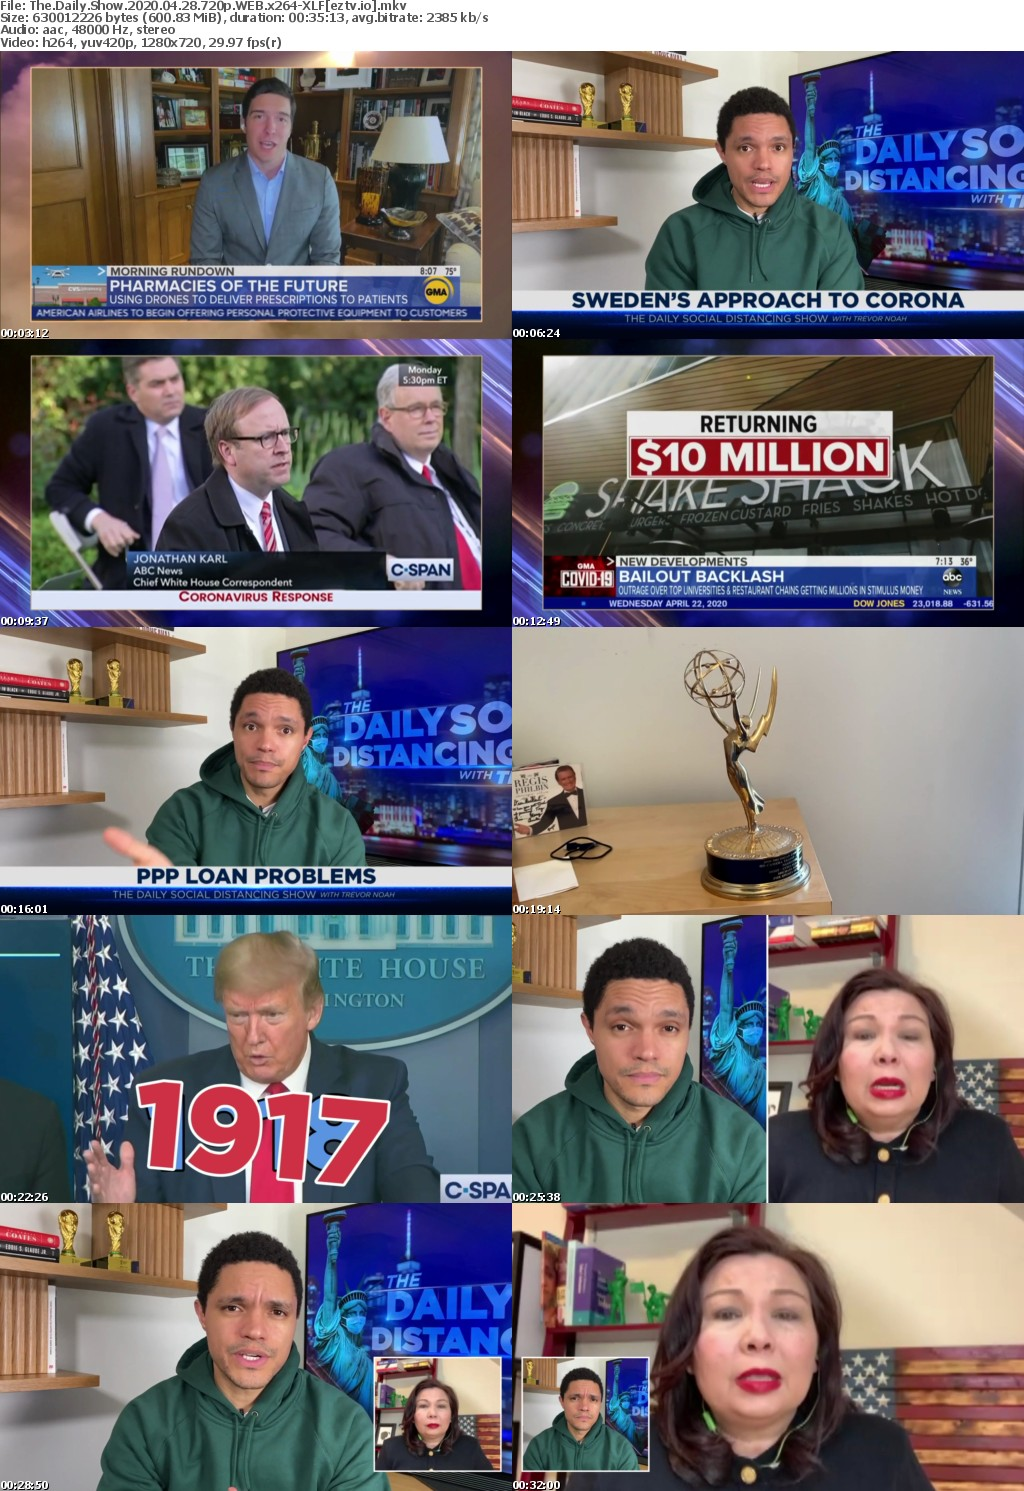 The Daily Show 2020 04 28 720p WEB x264-XLF